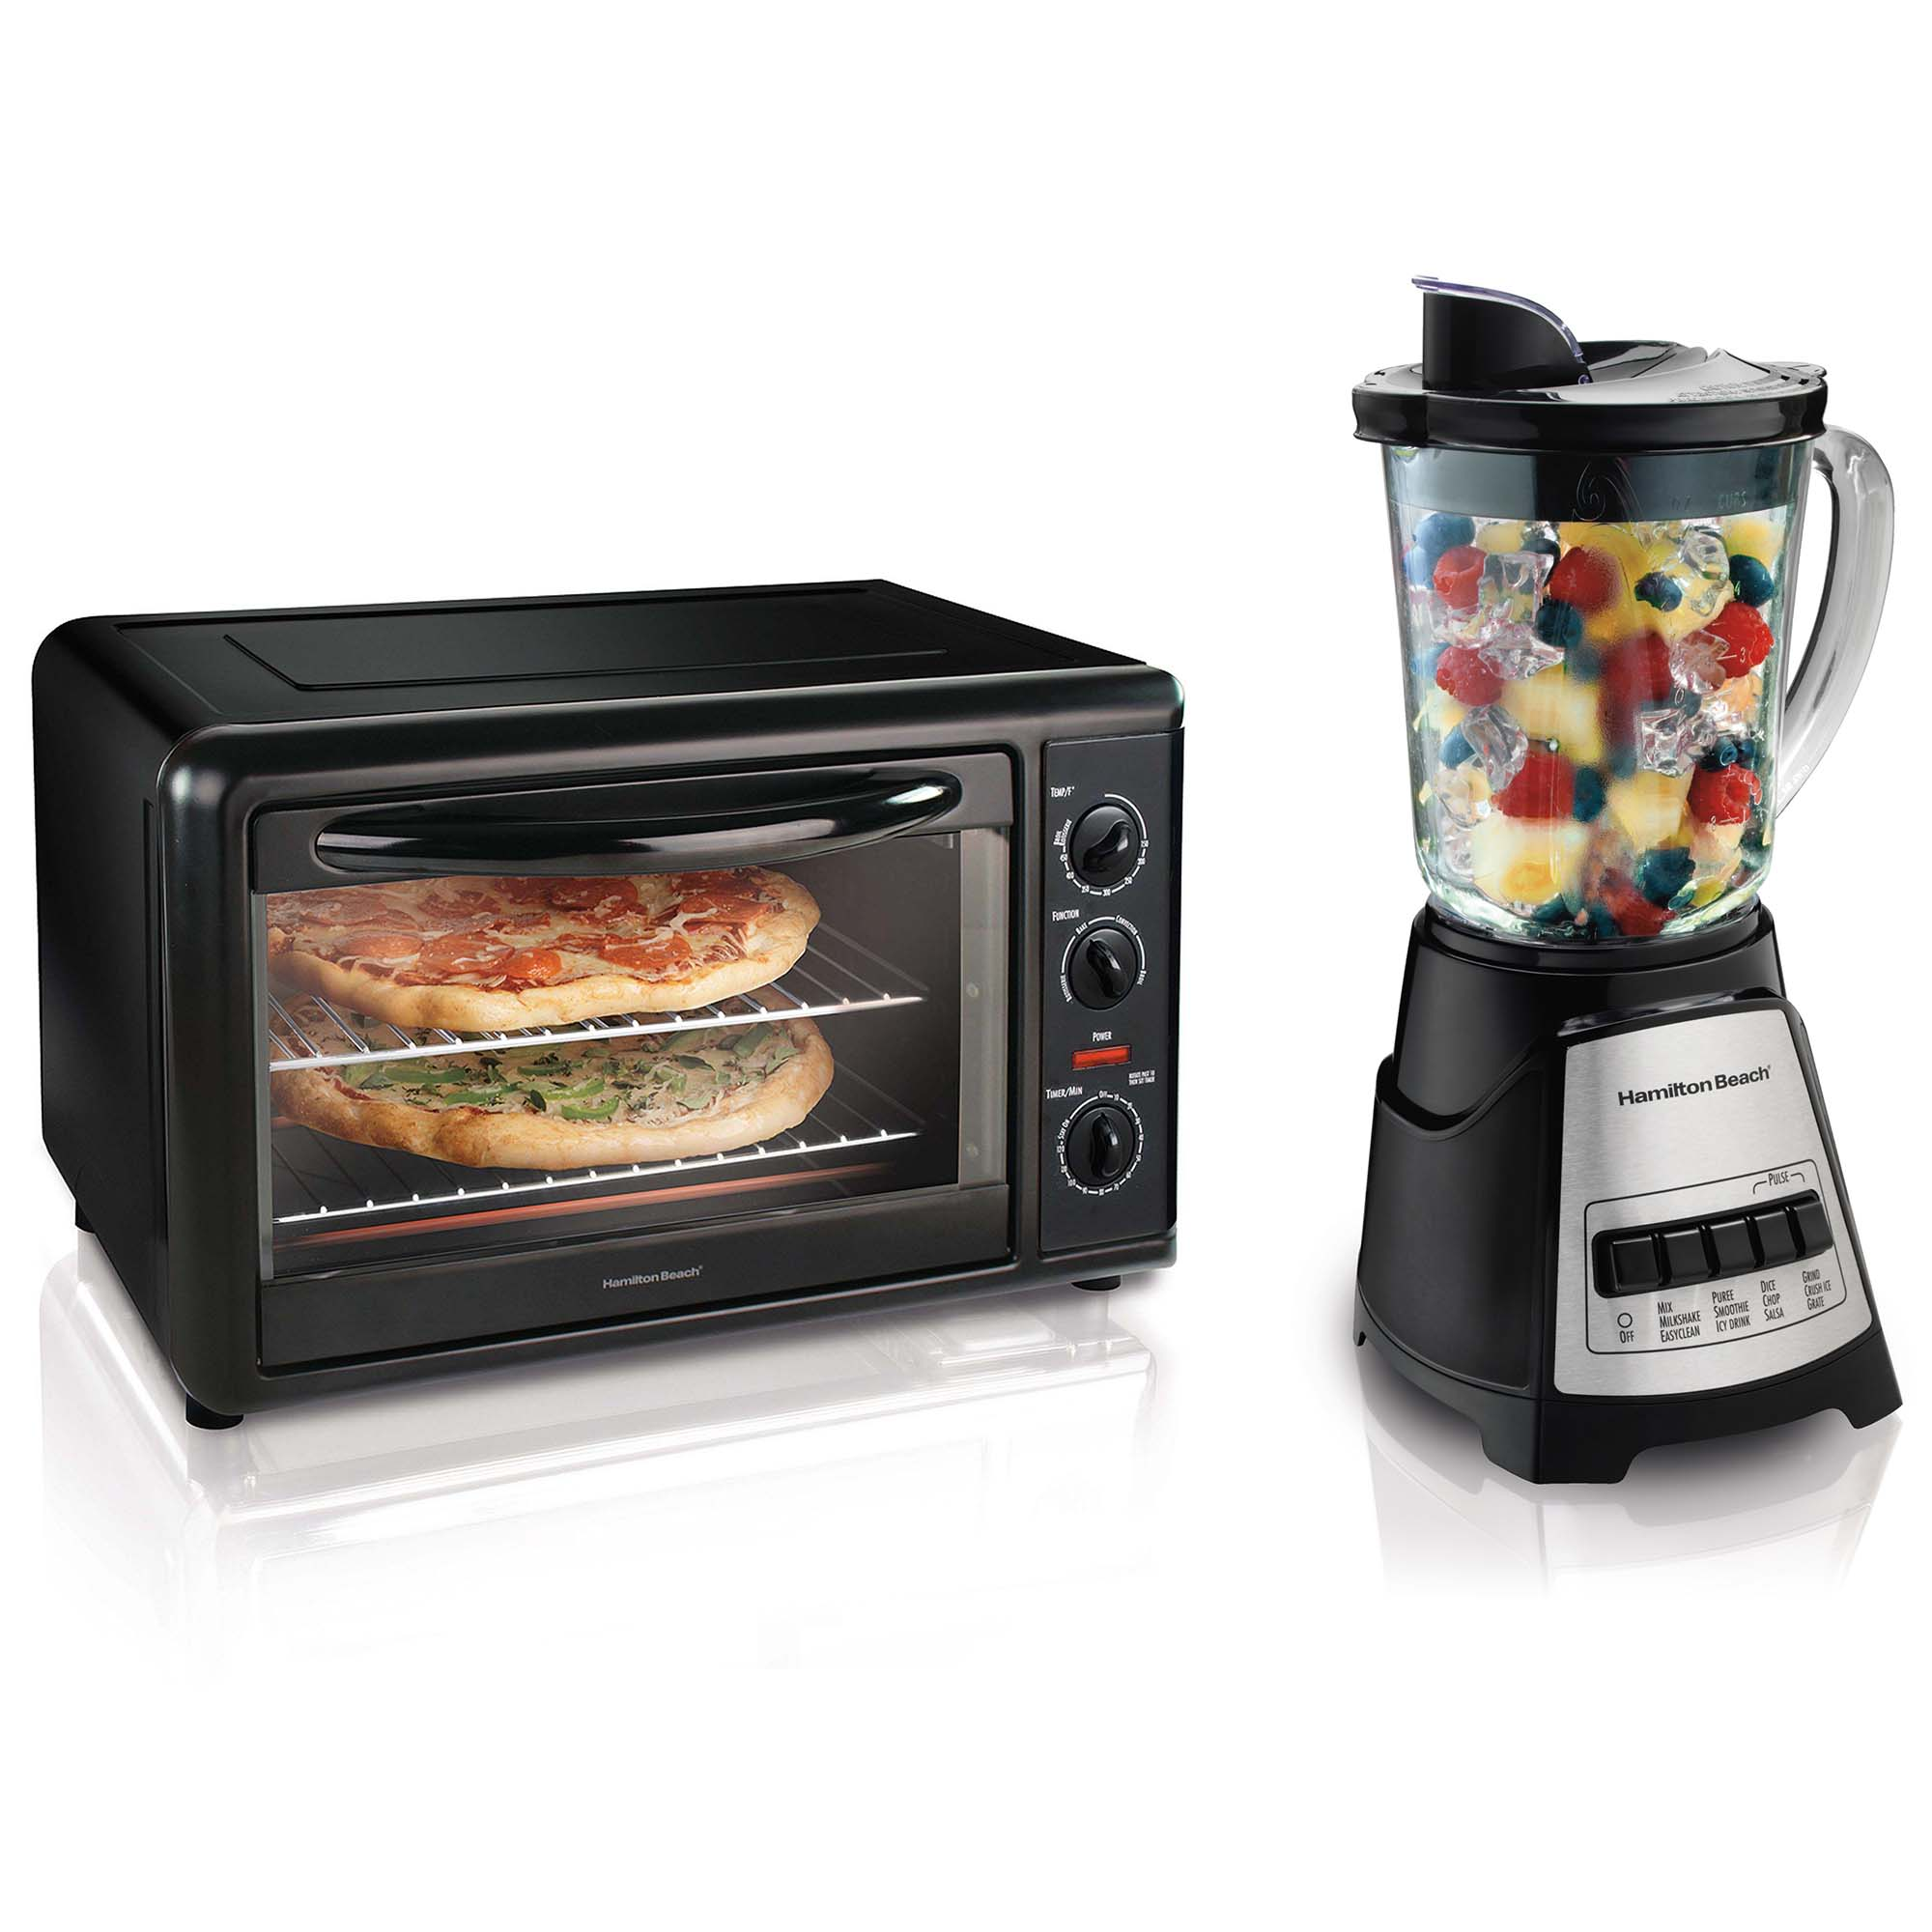 Hamilton Beach Toaster Oven with Convection + Elite Multi...